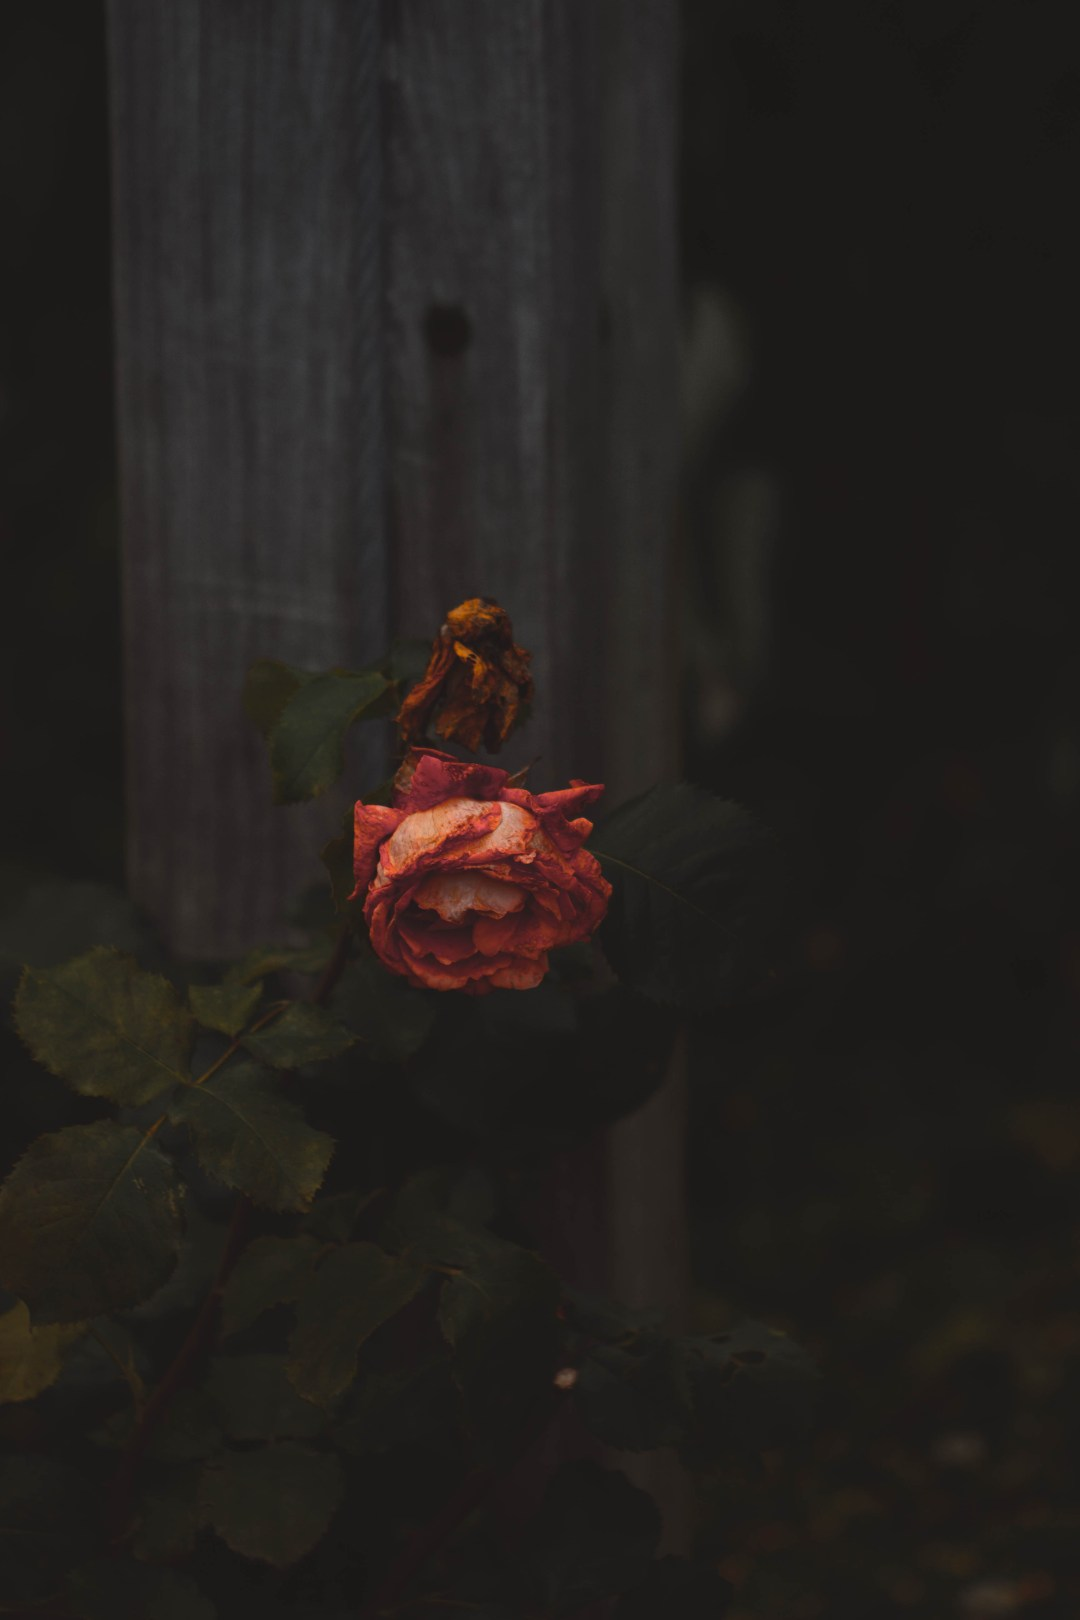 Rust Girl Wallpaper Red Rose Shallow Focus Photography Photo Free Bacon